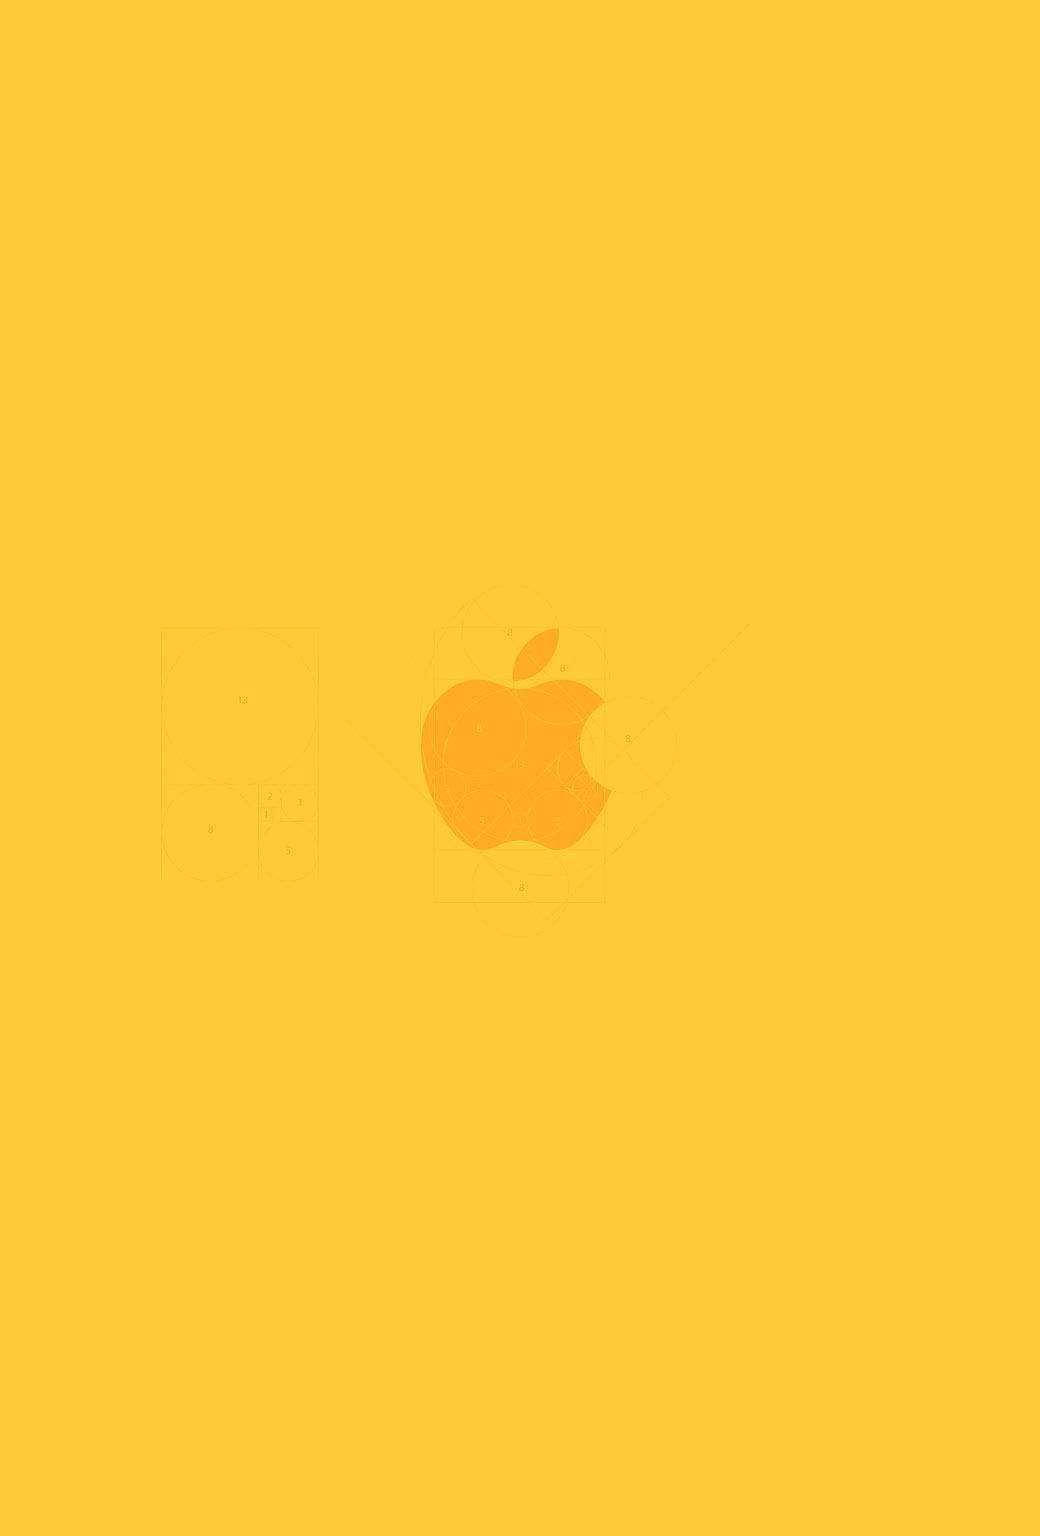 Iphone Tumblr Yellow Wallpapers Wallpaper Cave